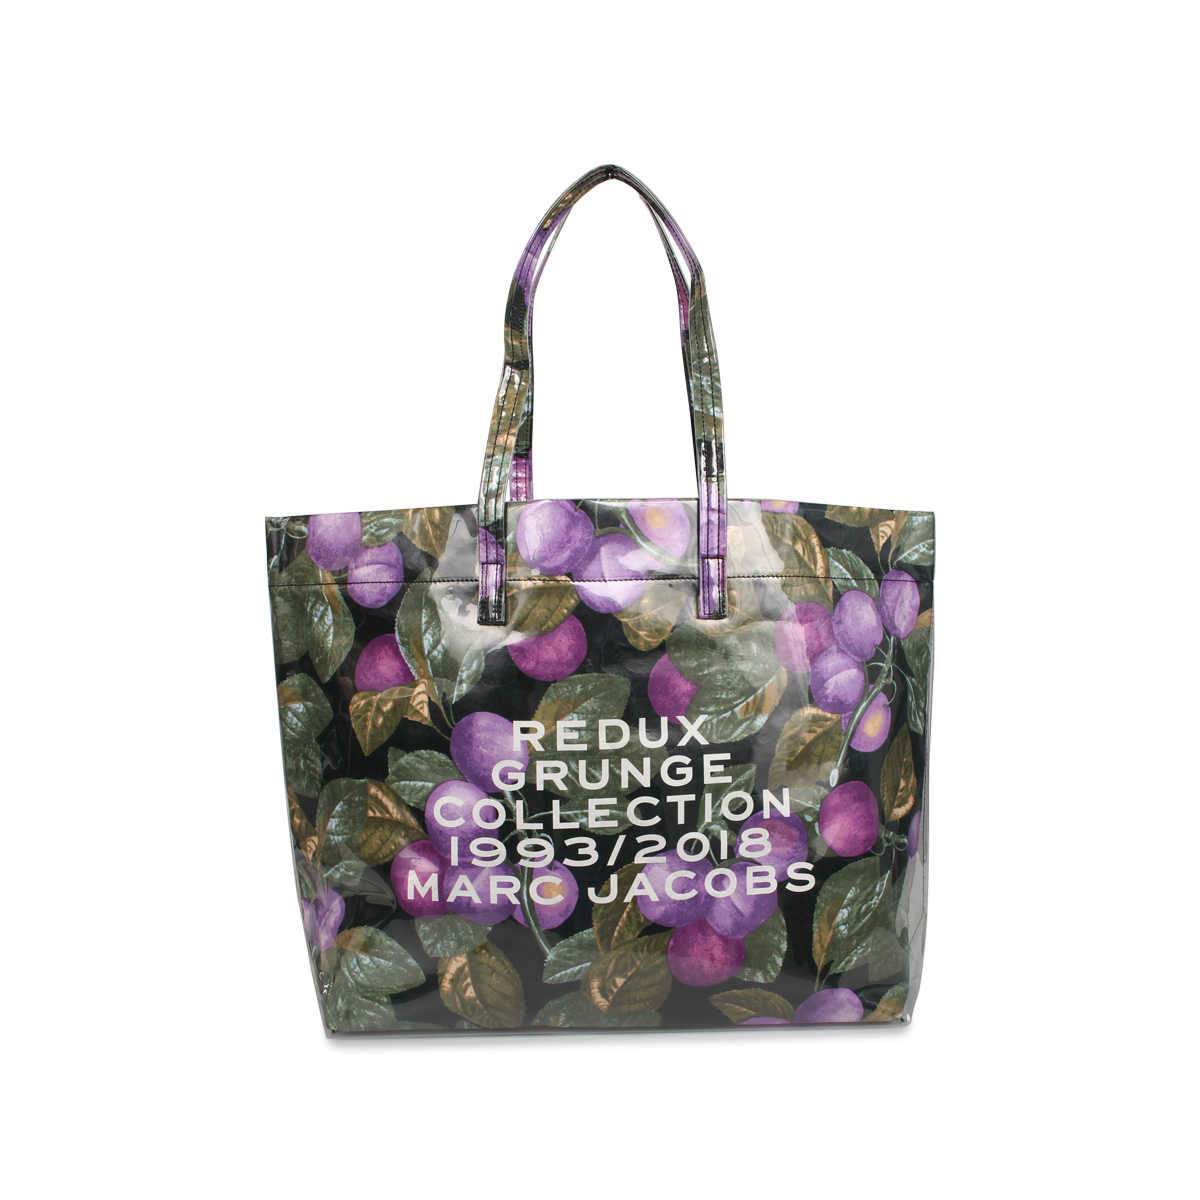 MARC JACOBS REDUX GRUNGE FRUIT TOTE マークジェイコブス バッグ トートバッグ レディース パープル M0014691-501 [3/10 新入荷]